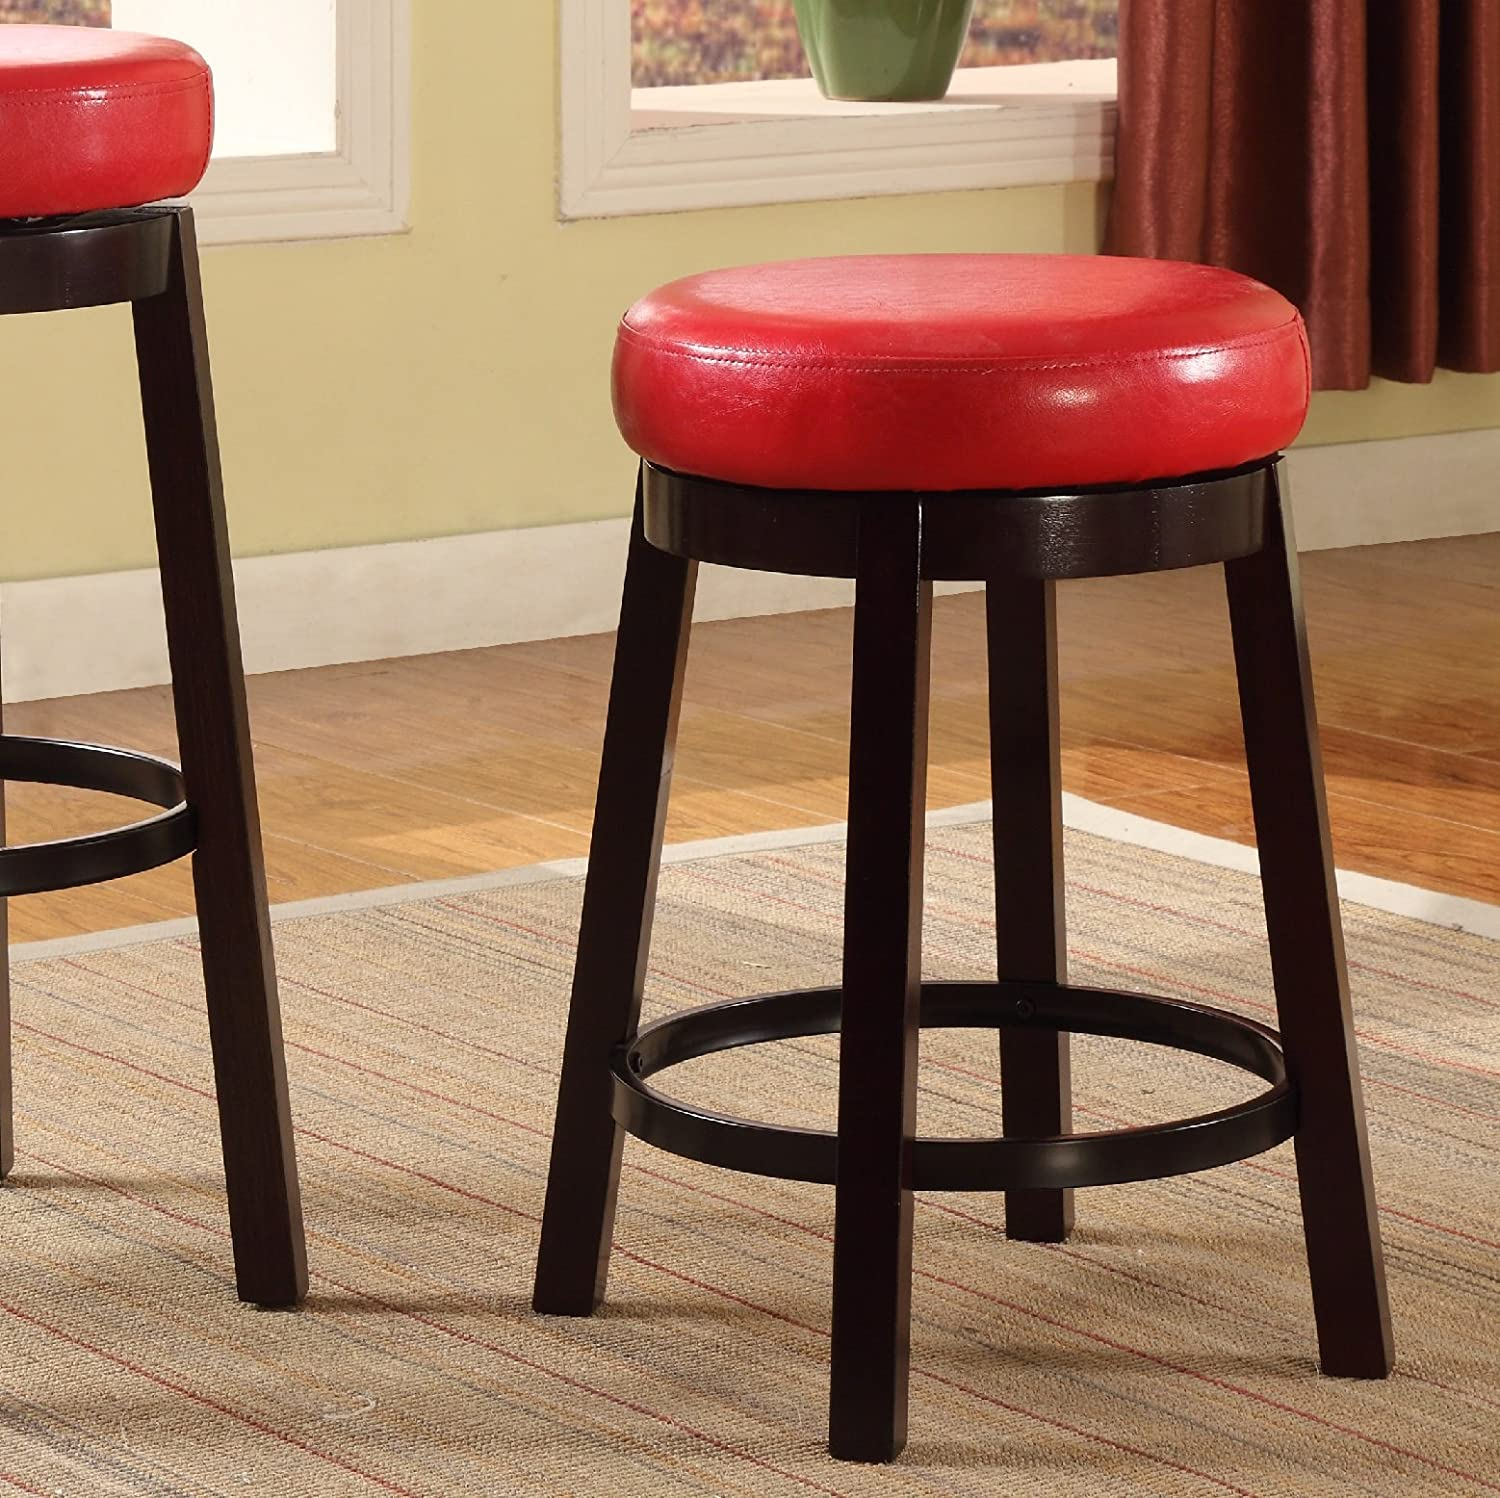 Roundhill Furniture Wooden Swivel Barstools, Counter Height, Snow White, Set of 2 PC002WH